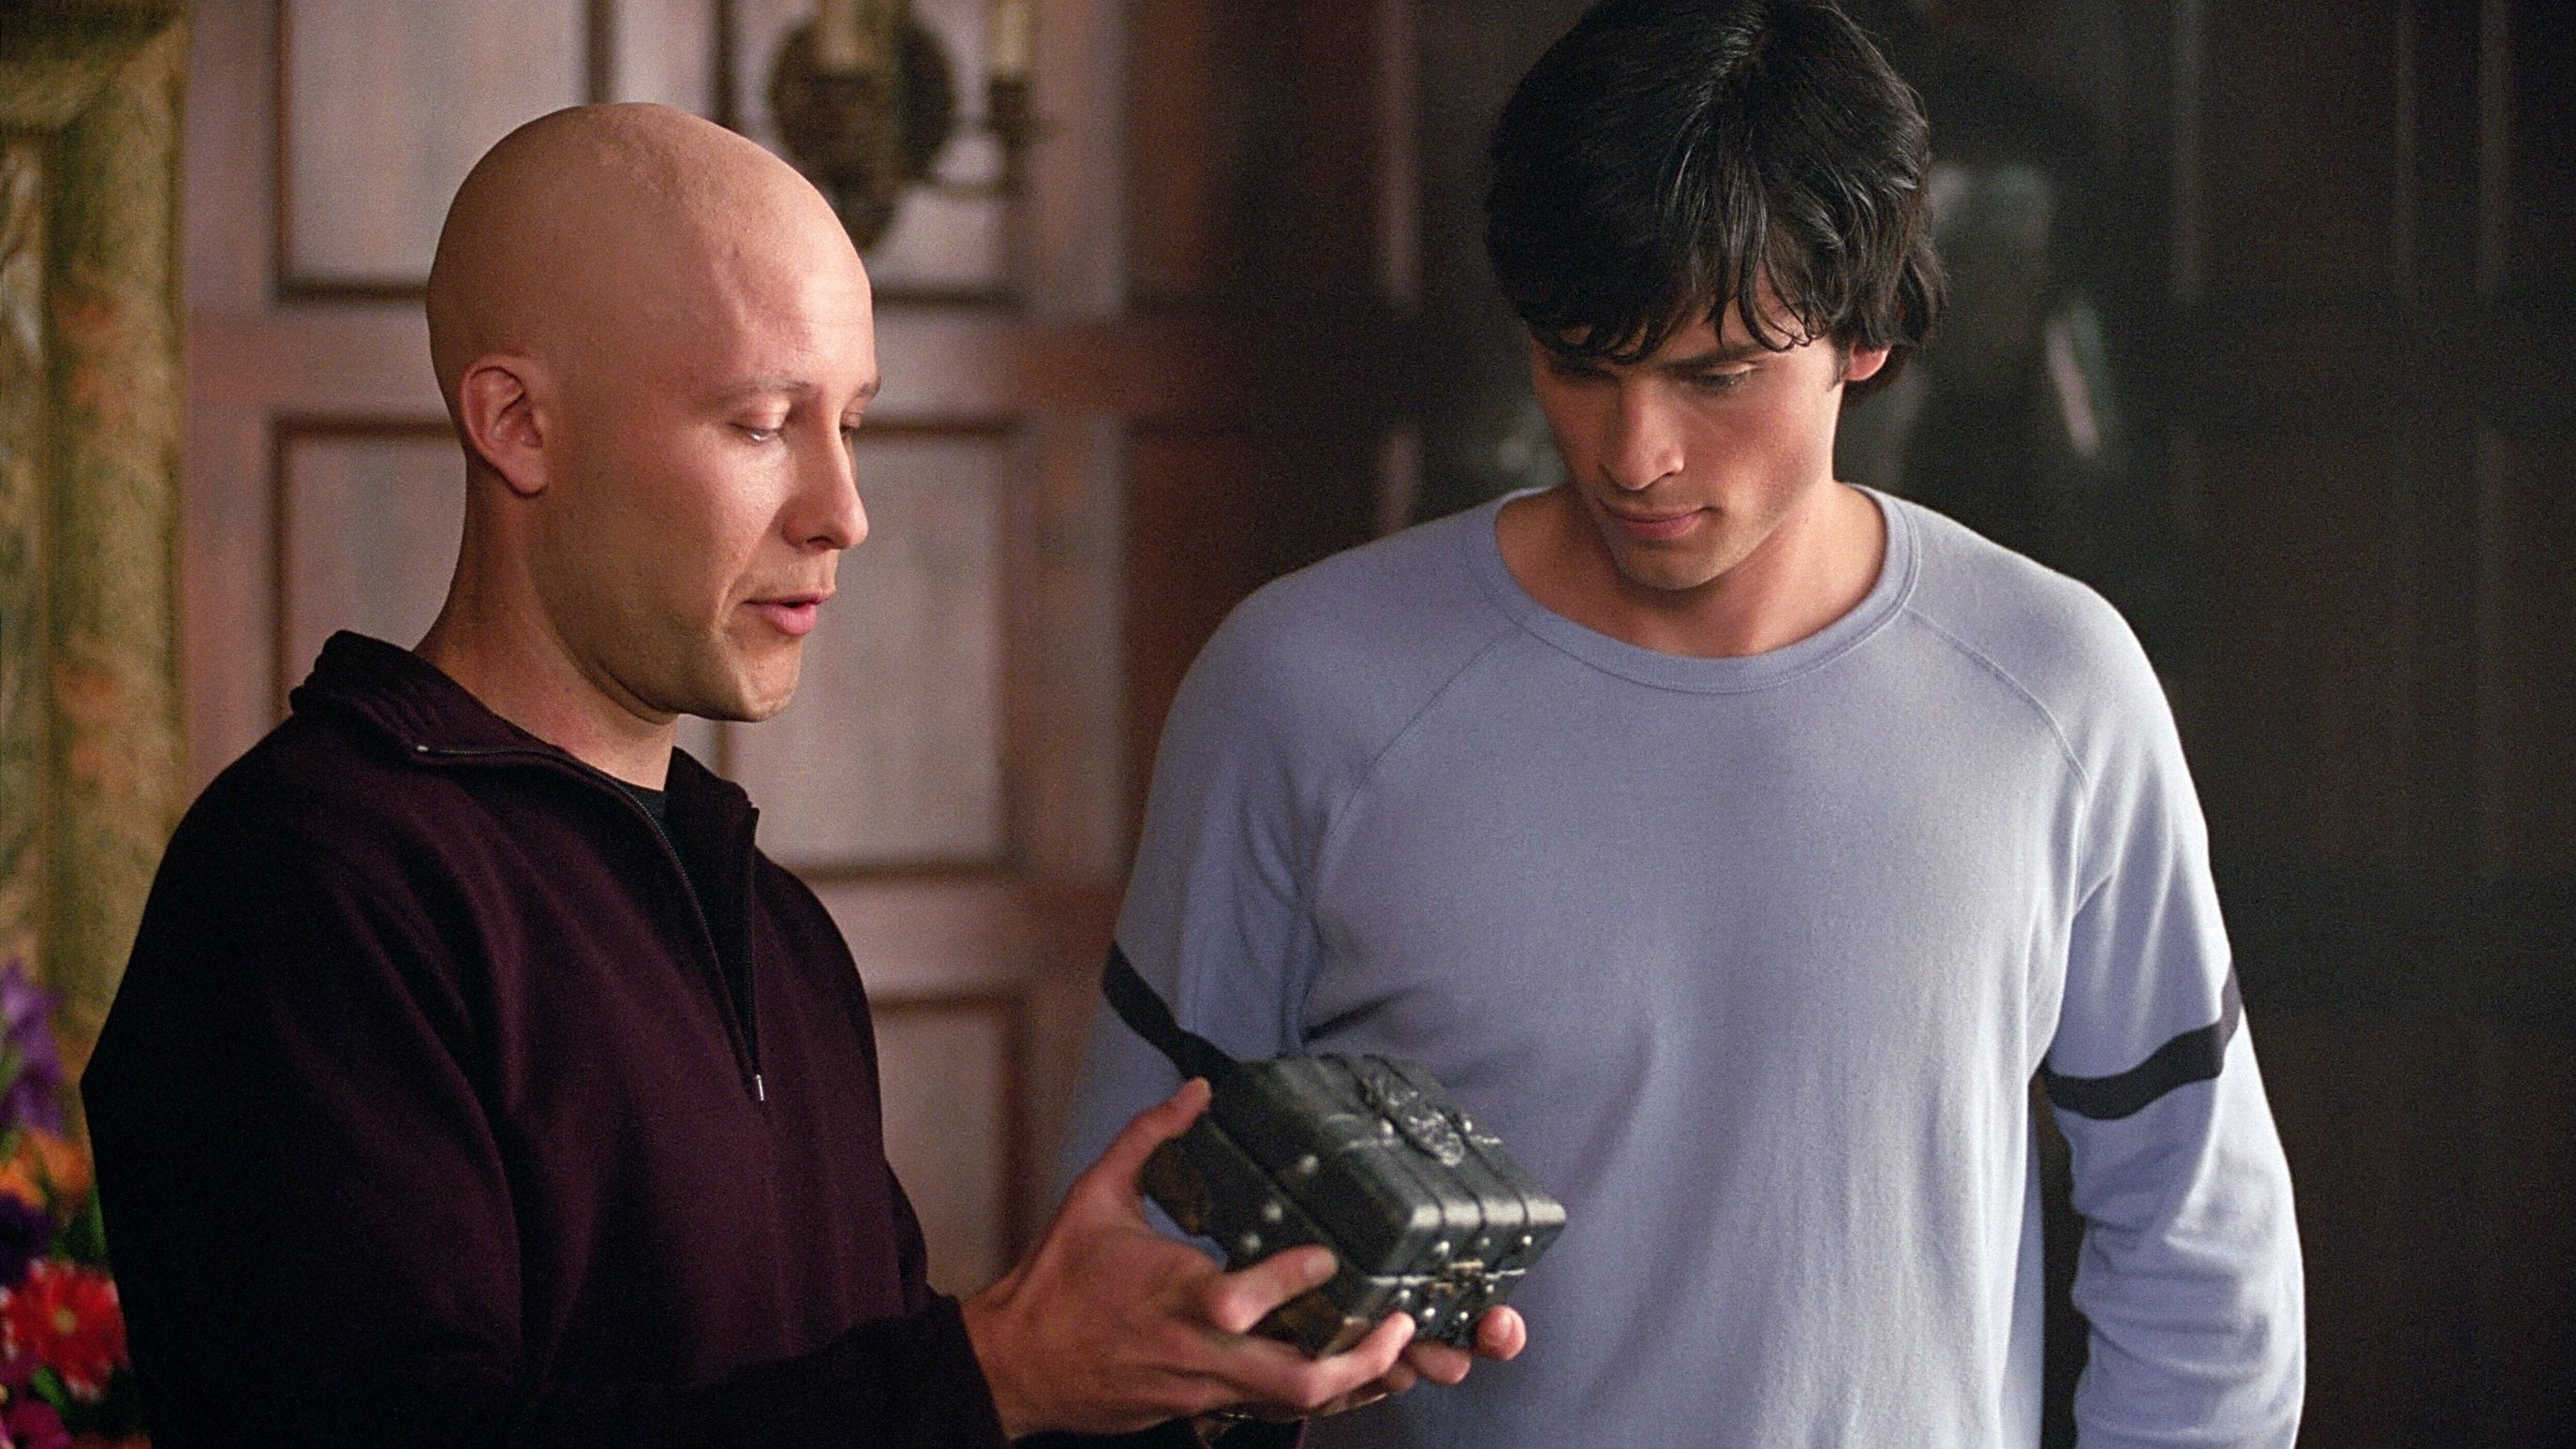 La Chambre Bleue Streaming Vf Smallville Saison 1 Episode 2 Streaming Vf Qualité Hd